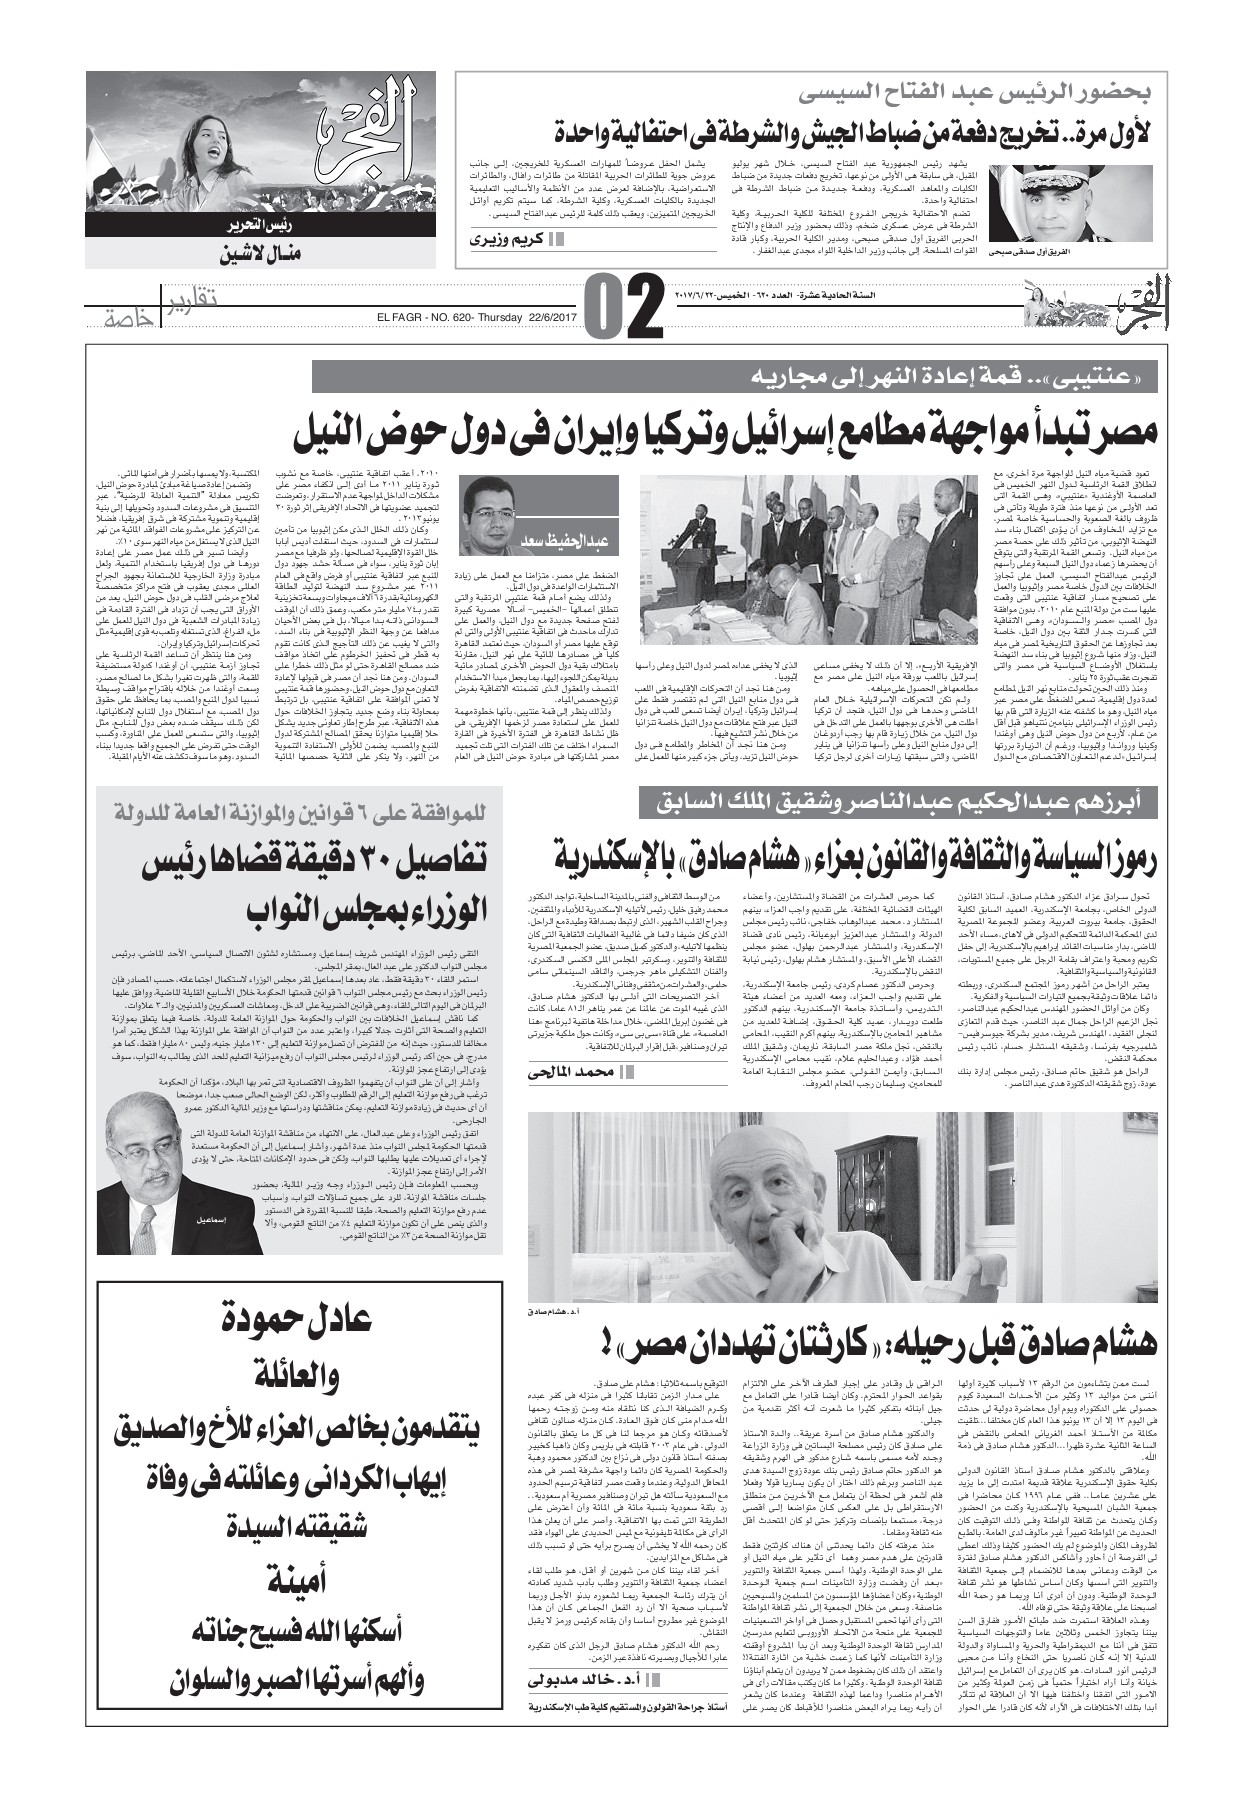 28ebe33e3 Elfagr Newspaper Pages 1 - 16 - Text Version | AnyFlip